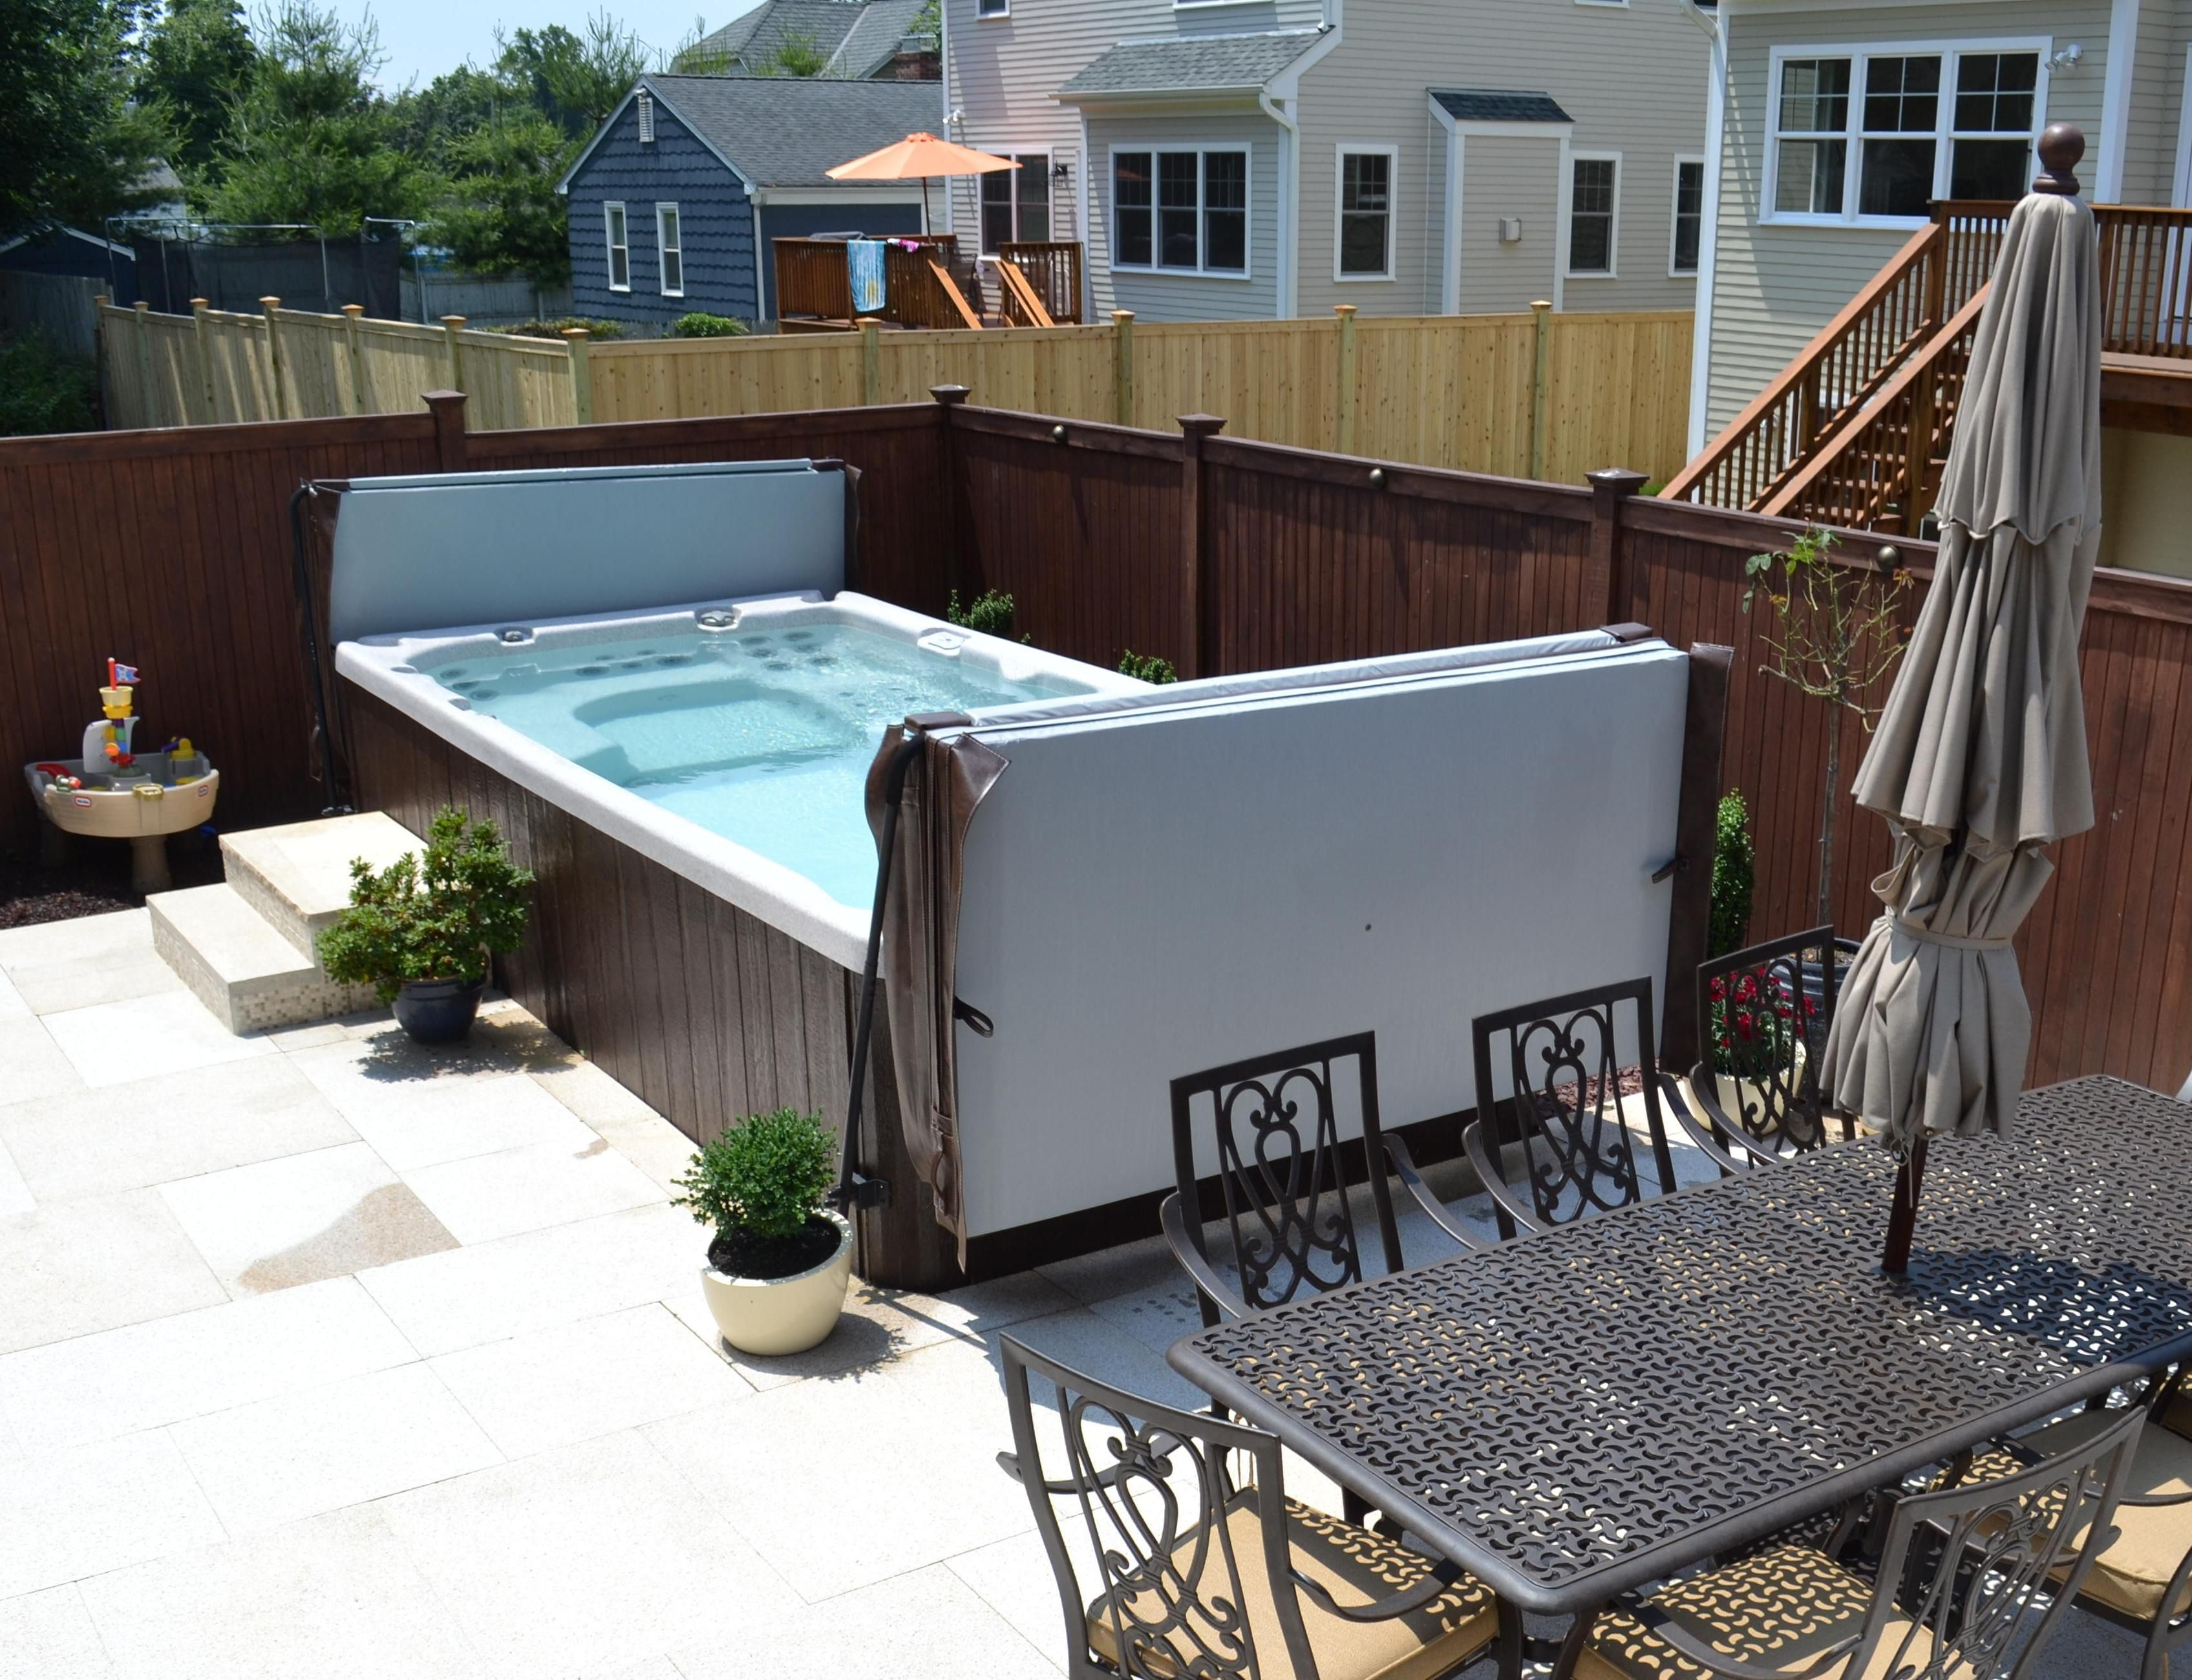 Atera swim spa cold spa hot tub jacuzzi pool for Pool design certification